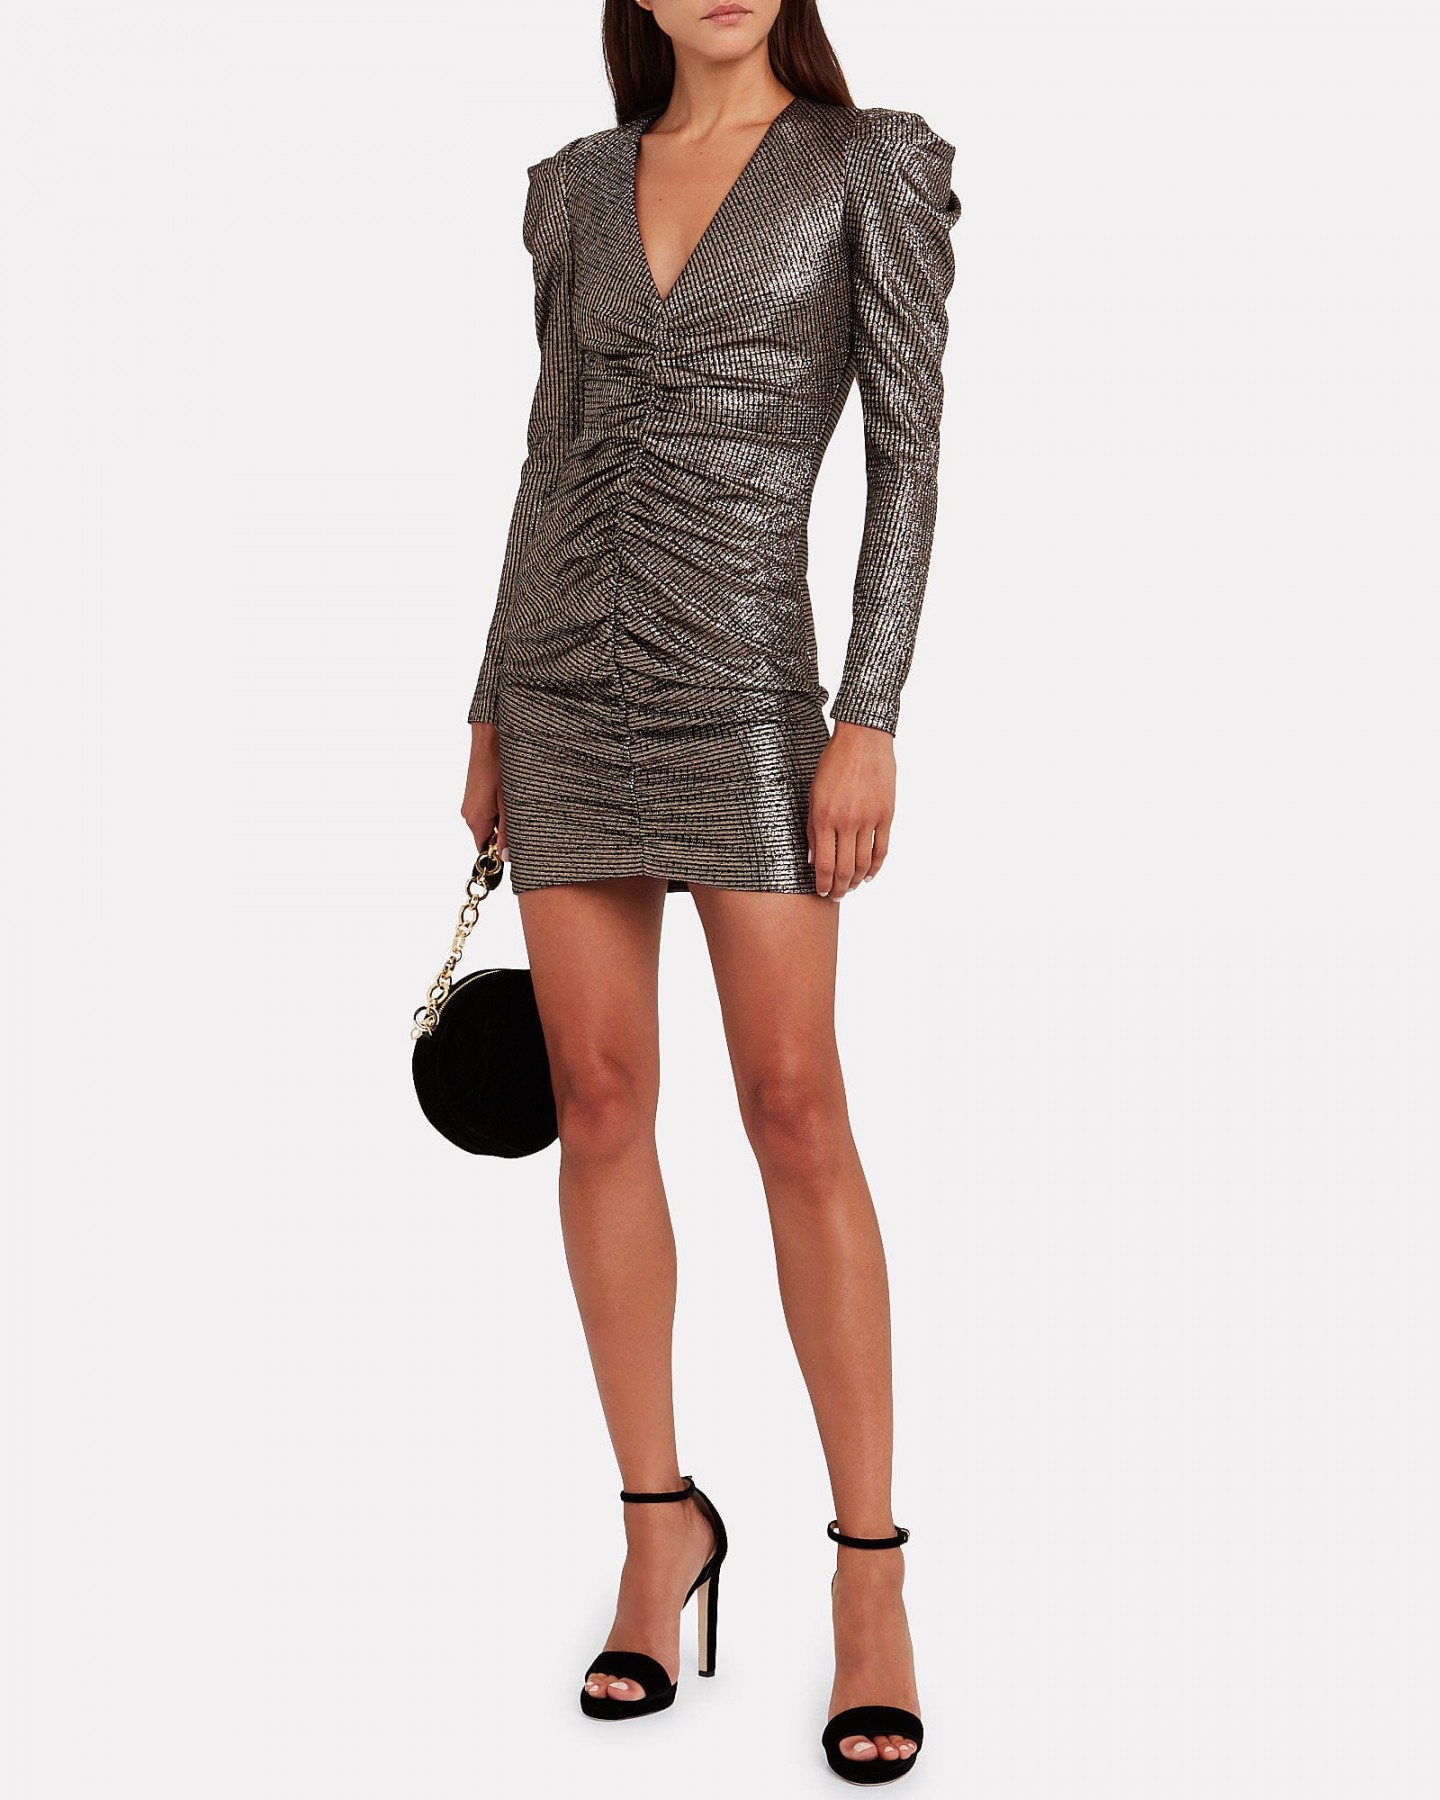 JONATHAN SIMKHAI Lamé Puff Sleeve Mini Dress